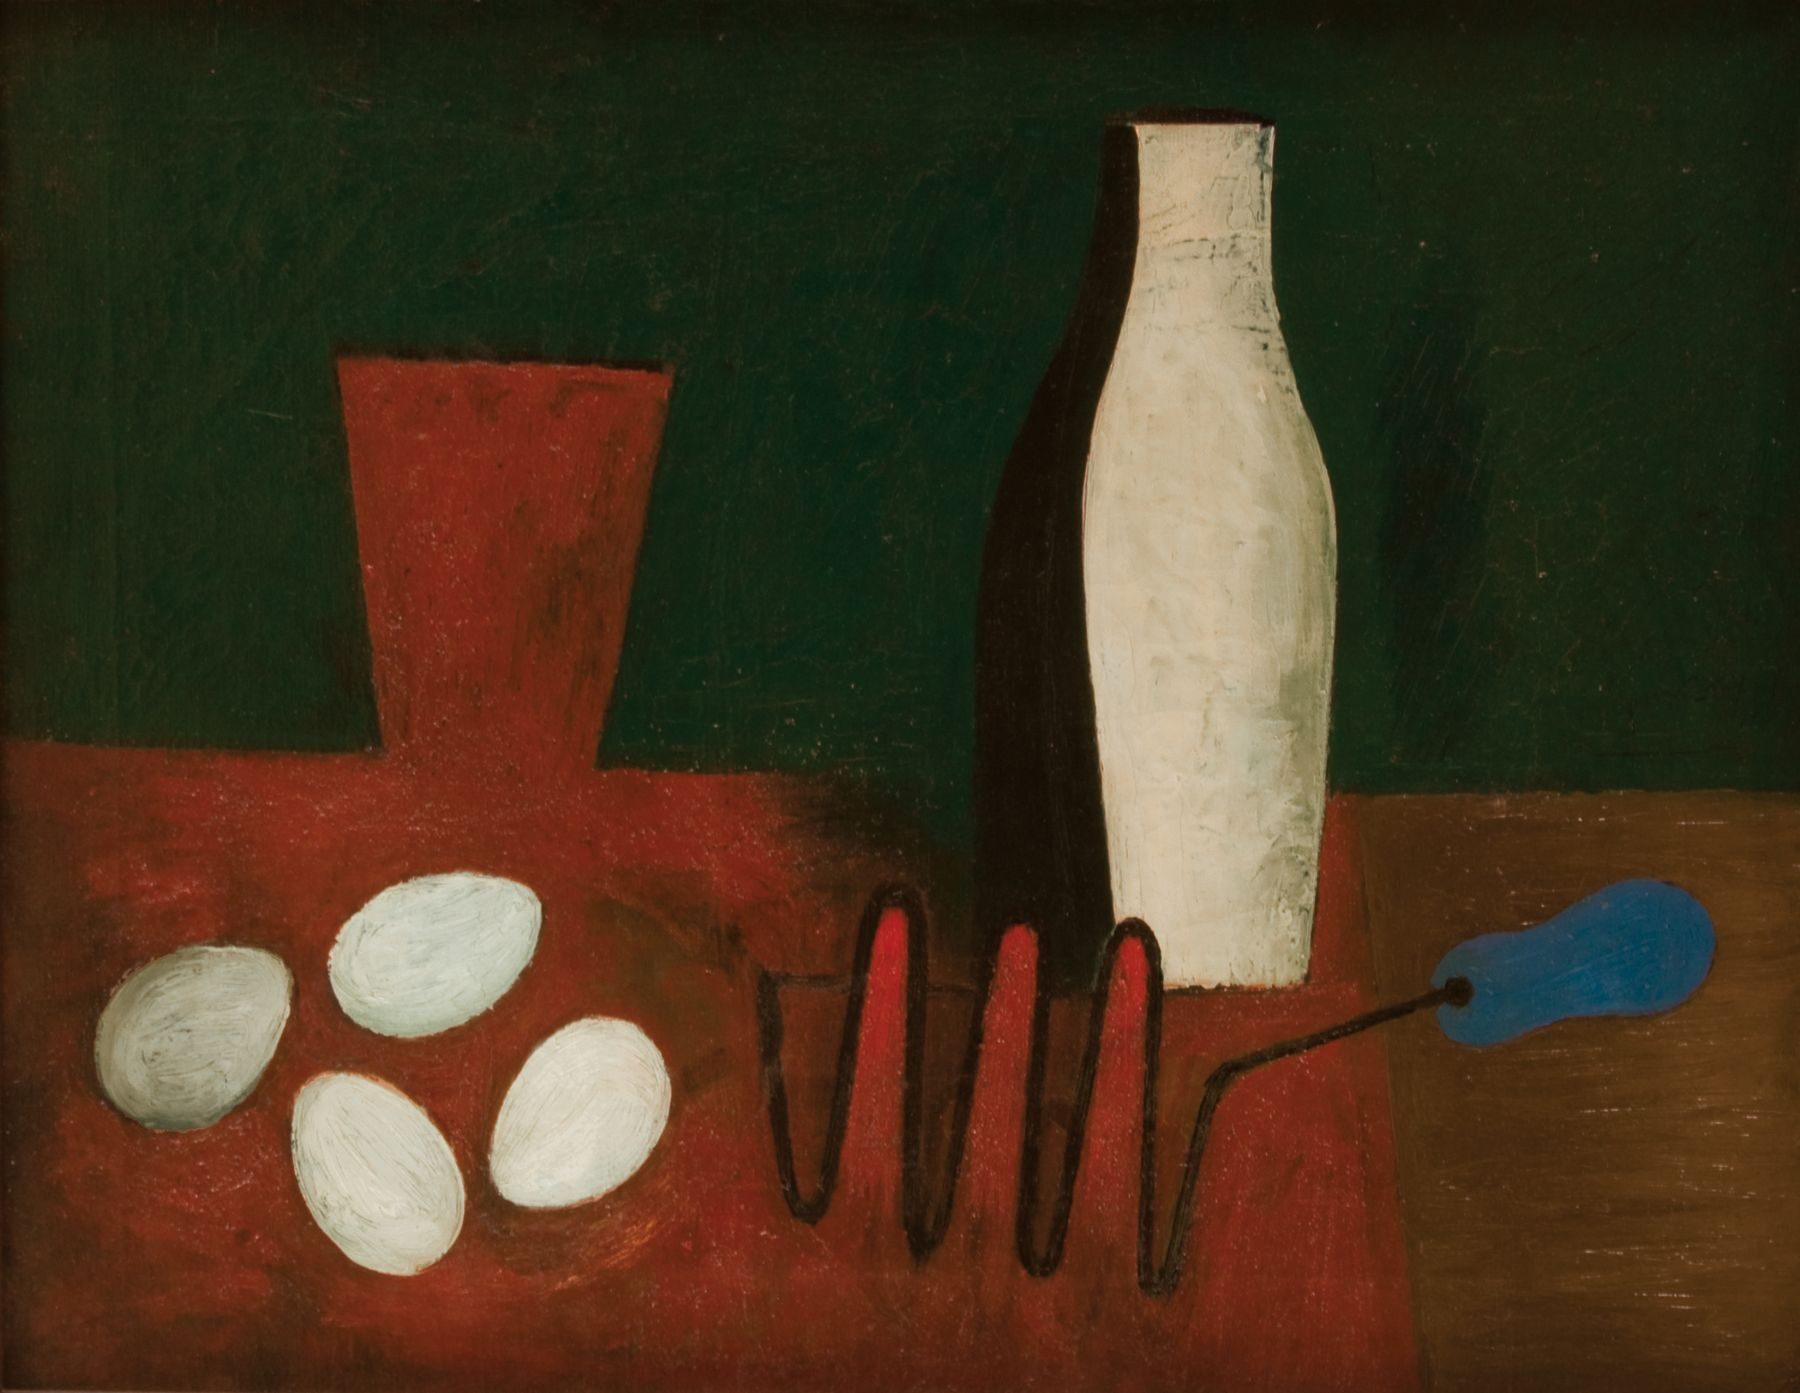 willem de kooning, Untitled (Still Life with Eggs and Potato Masher), c. 1928-1929 oil and sand on canvas 18 x 24 inches